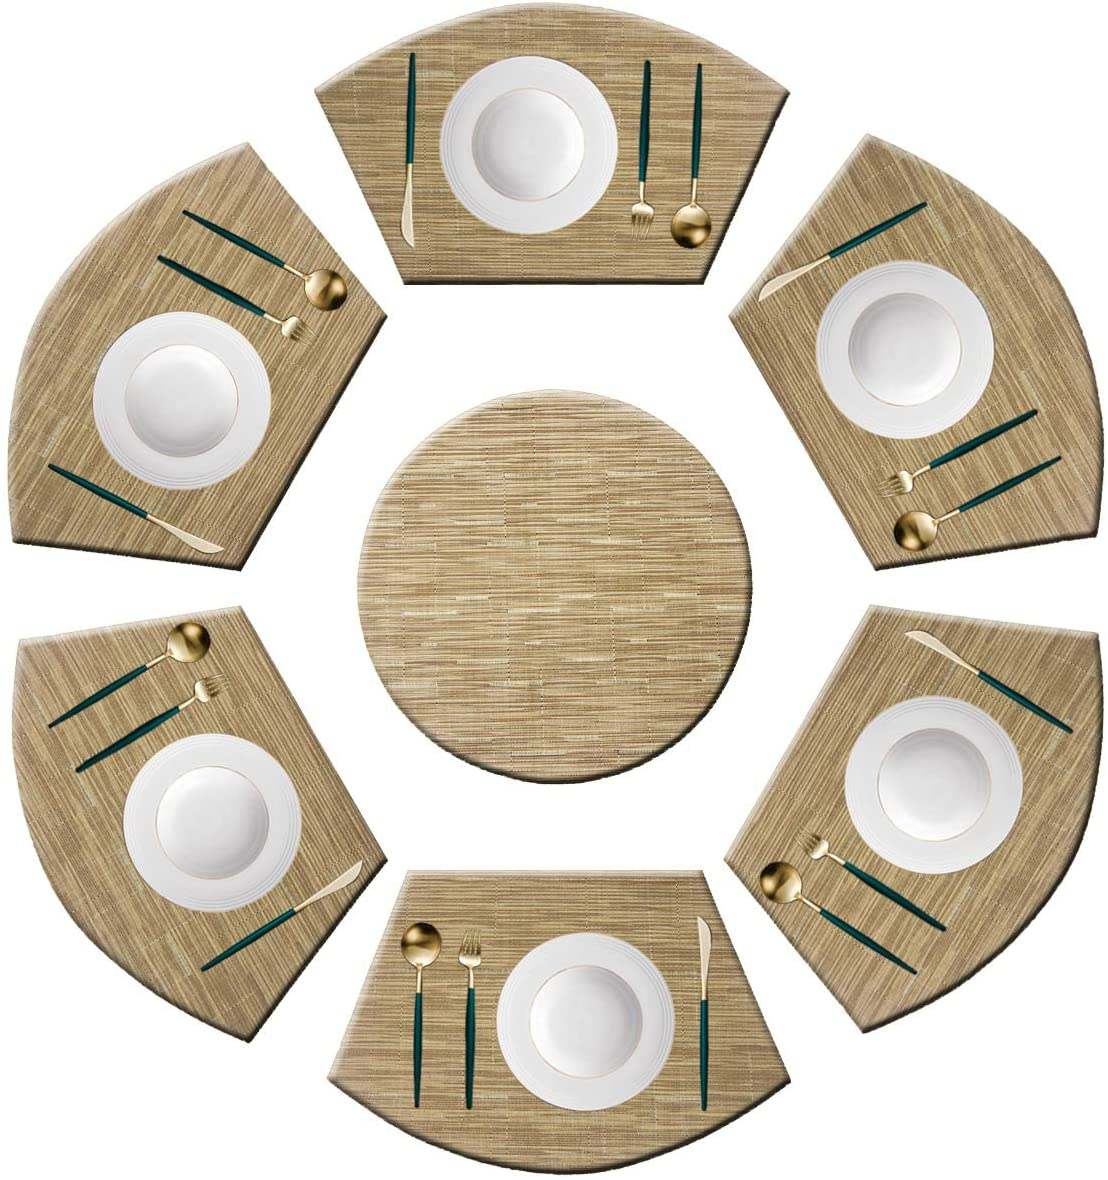 Panda Palm Placemat Wedge Shaped Set of 6 Placemats with a 14'' Round Placemats,Washable Vinyl Placemats Heat-Insulating Table Mats (Multi-Khaki)